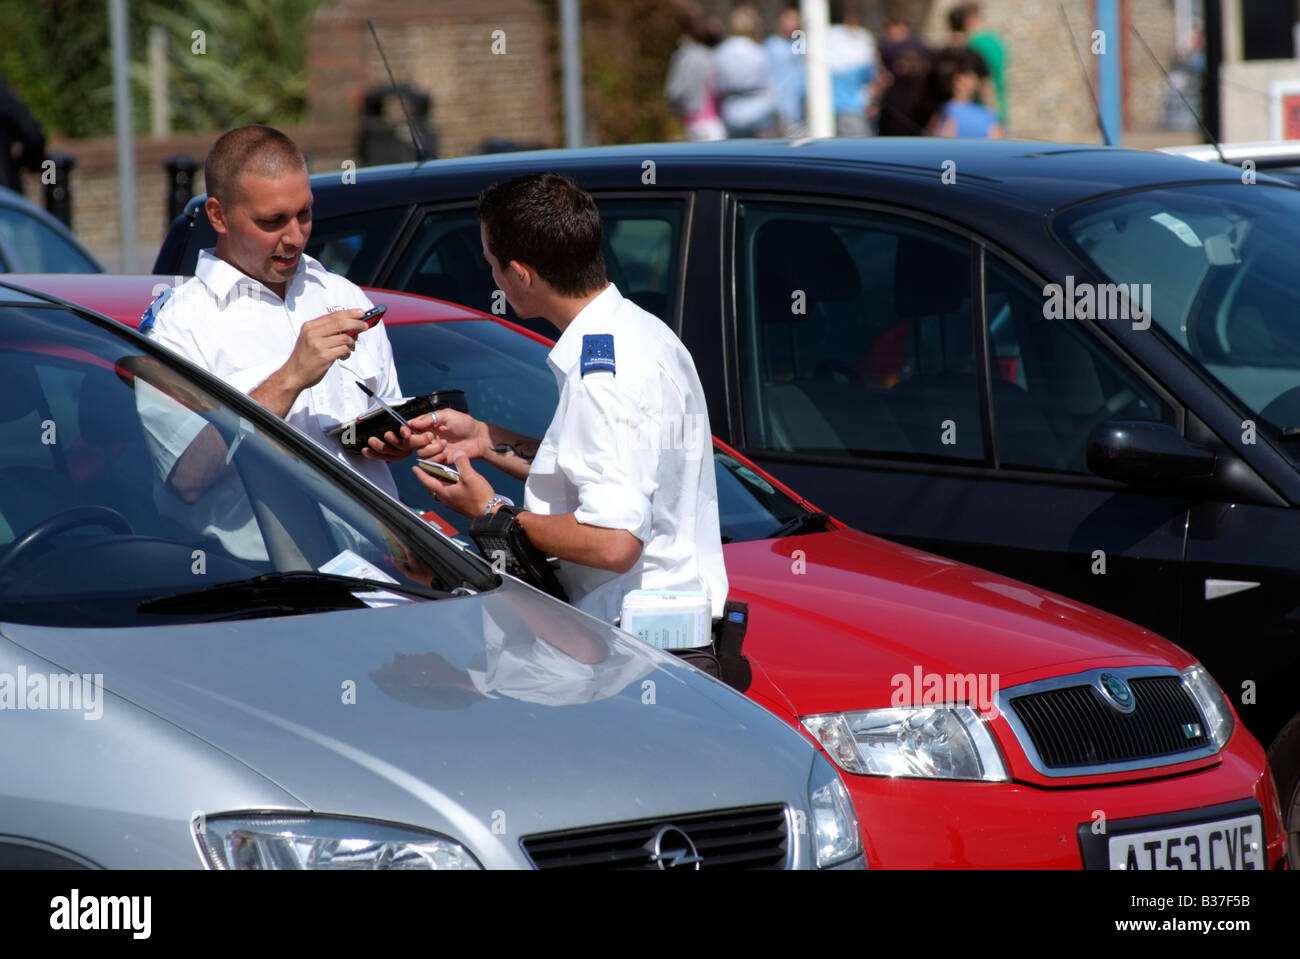 Civil parking enforcement officer issue a penalty ticket Worthing on Sea West Sussex England UK NCP Services contract - Stock Image